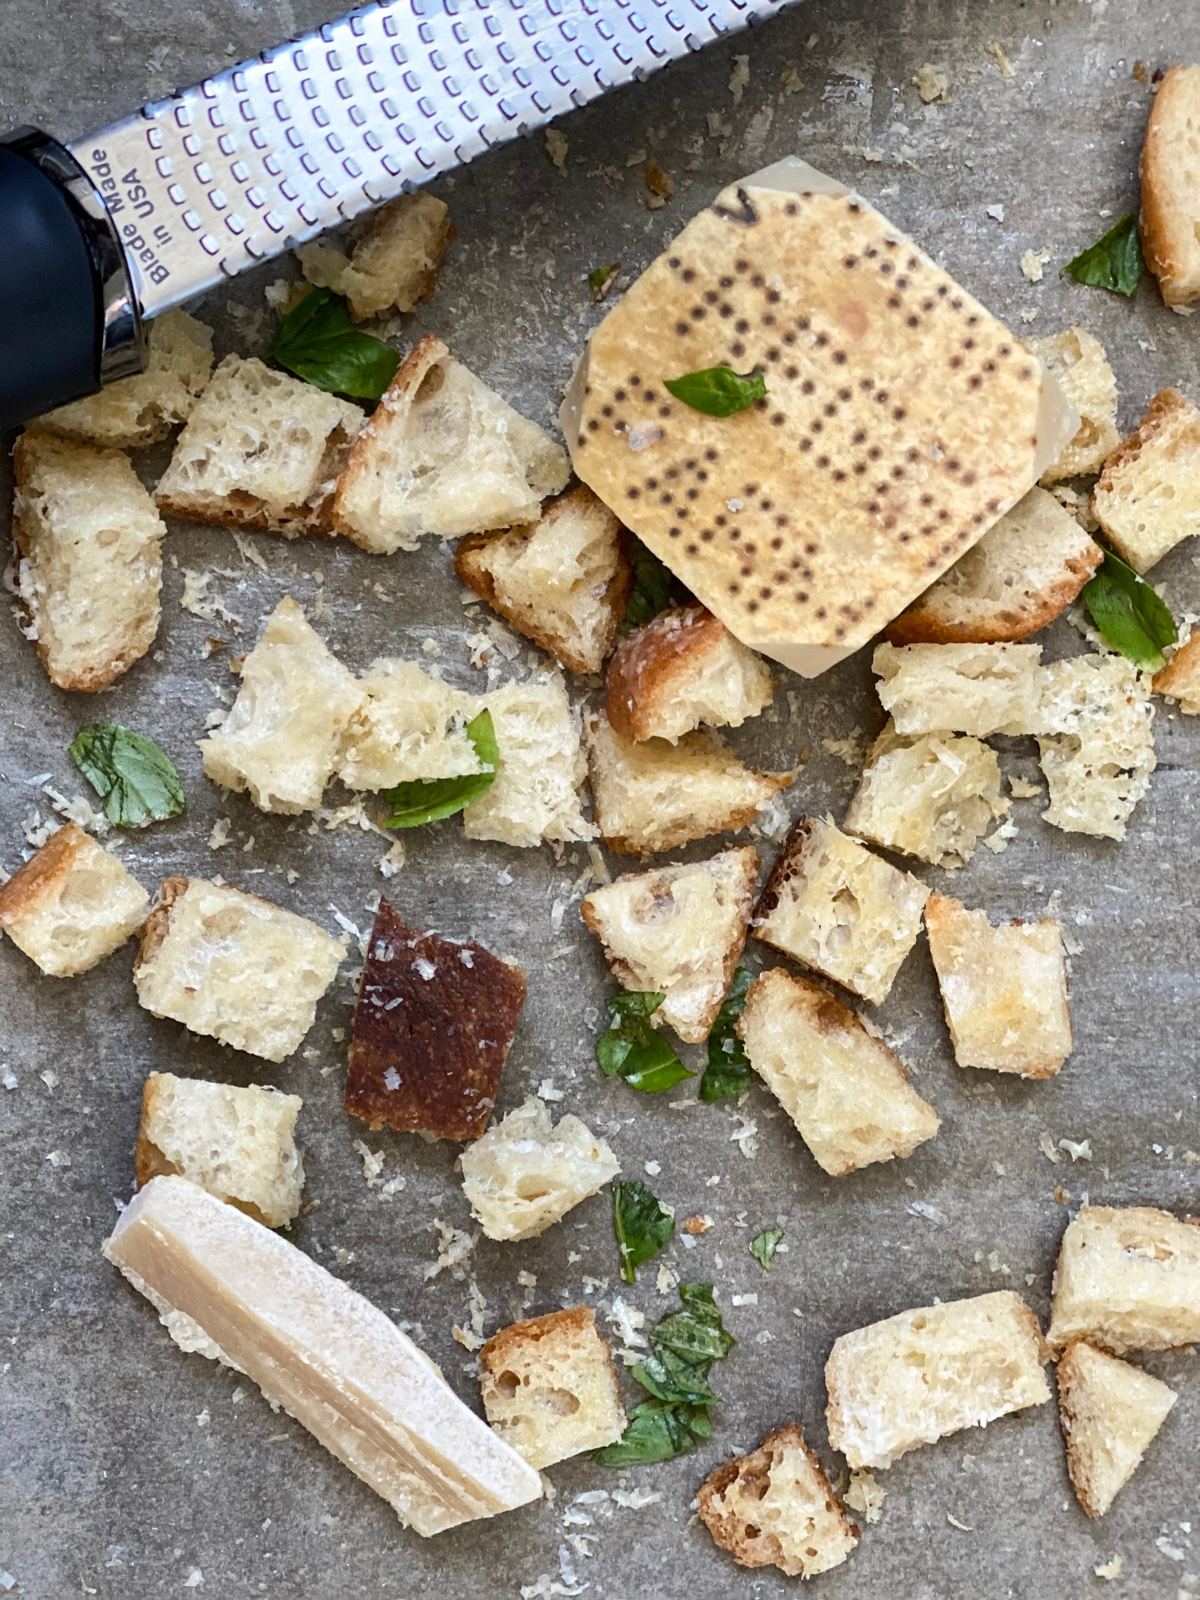 croutons on a baking sheet with parmesan and cheese grater